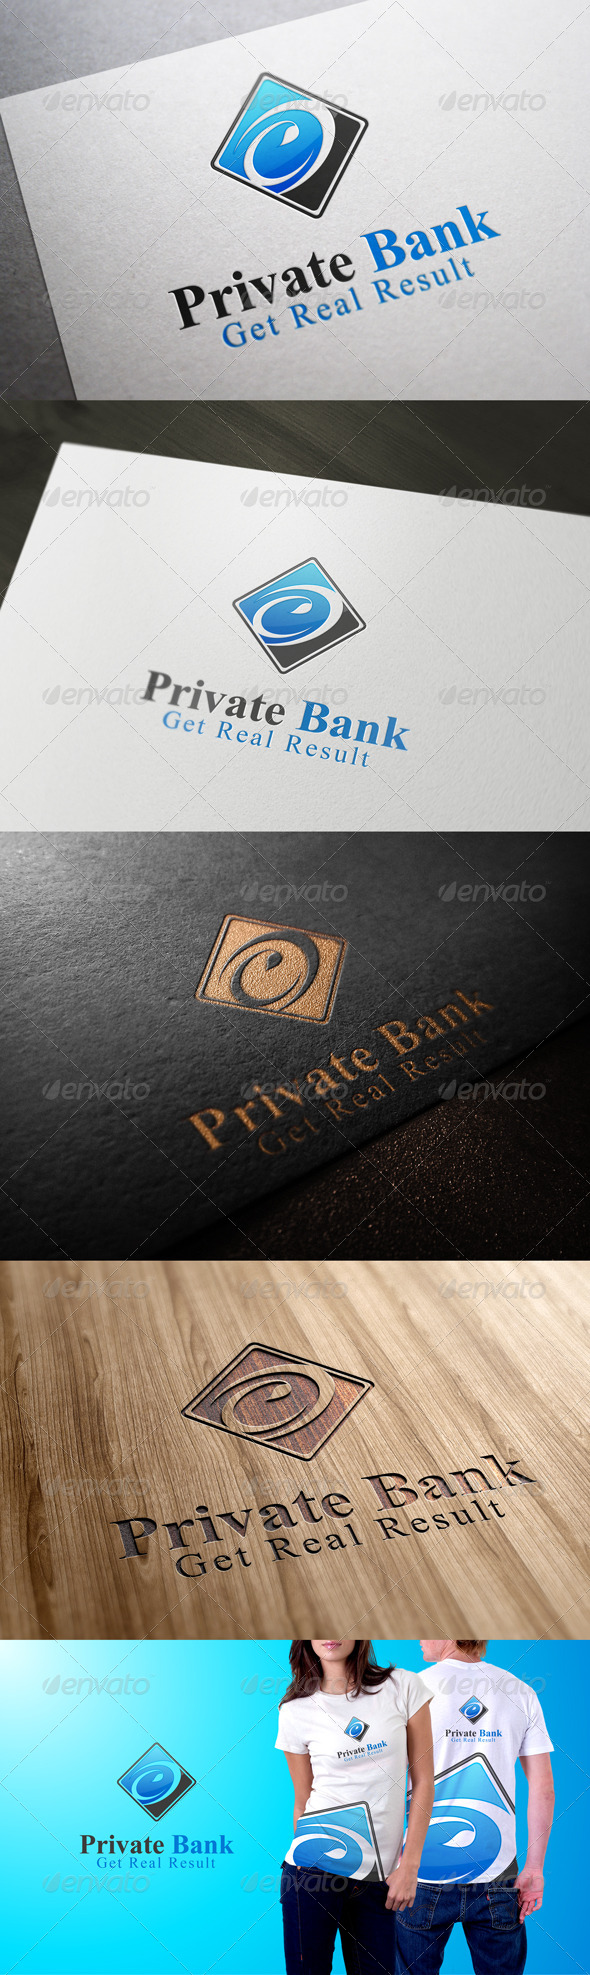 Private Bank